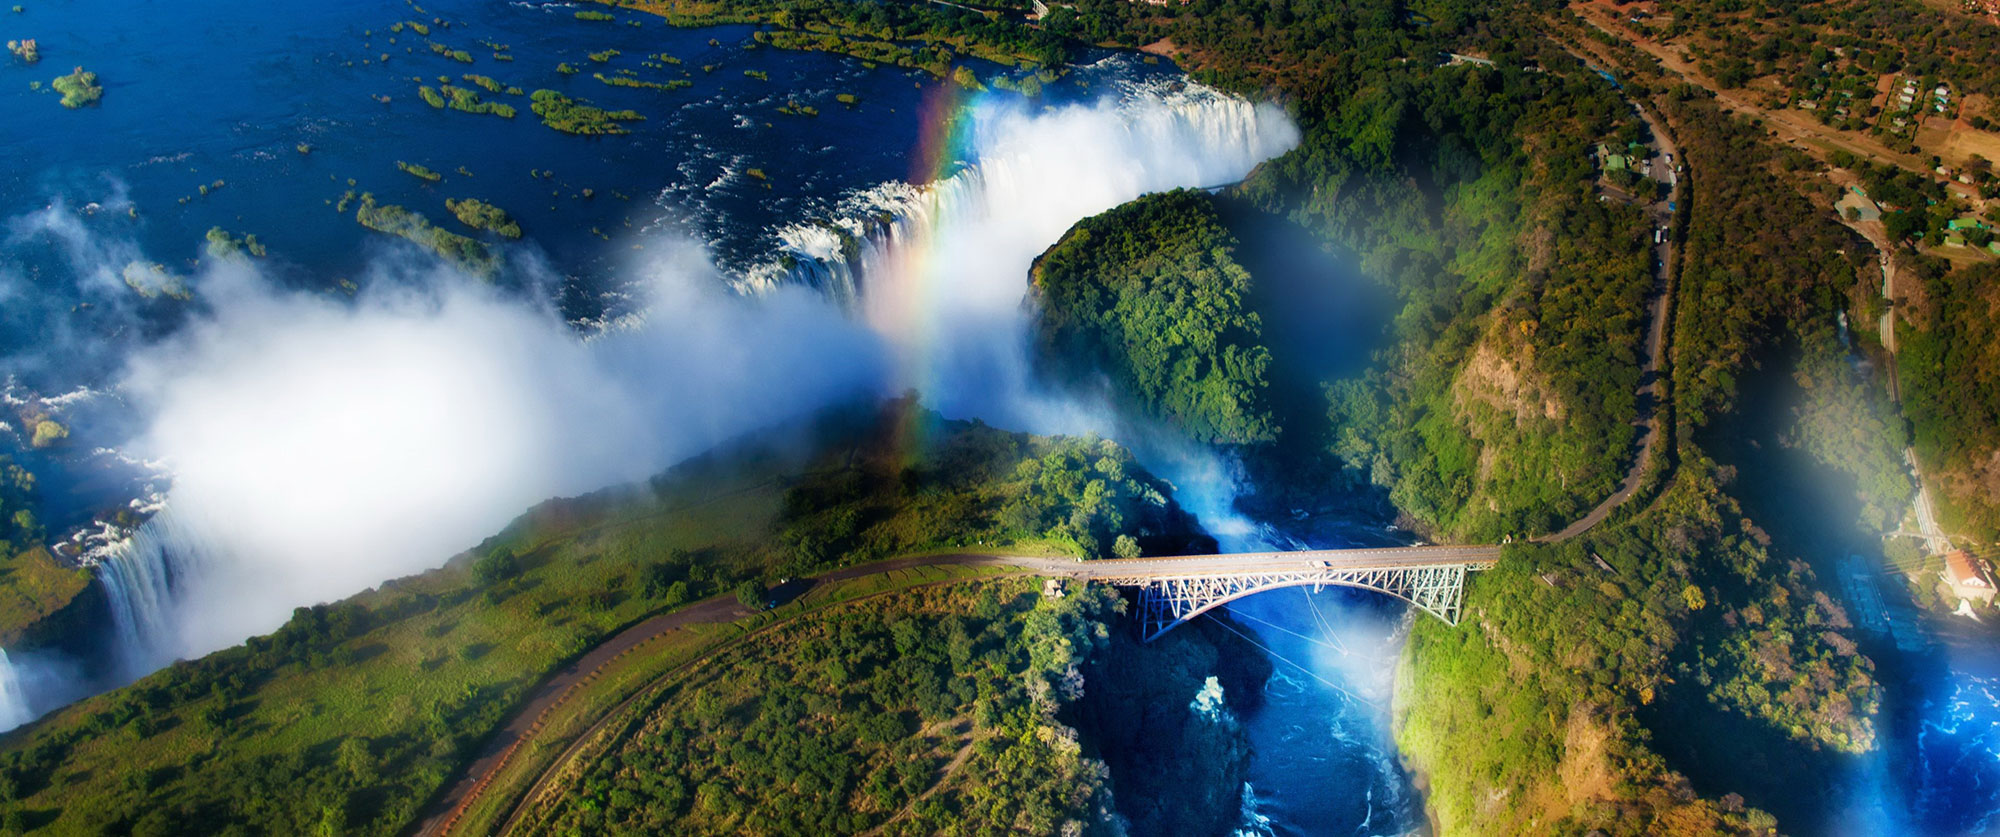 Zimbabwe - Victoria Falls safari and tours, Rovos Rail itineraries